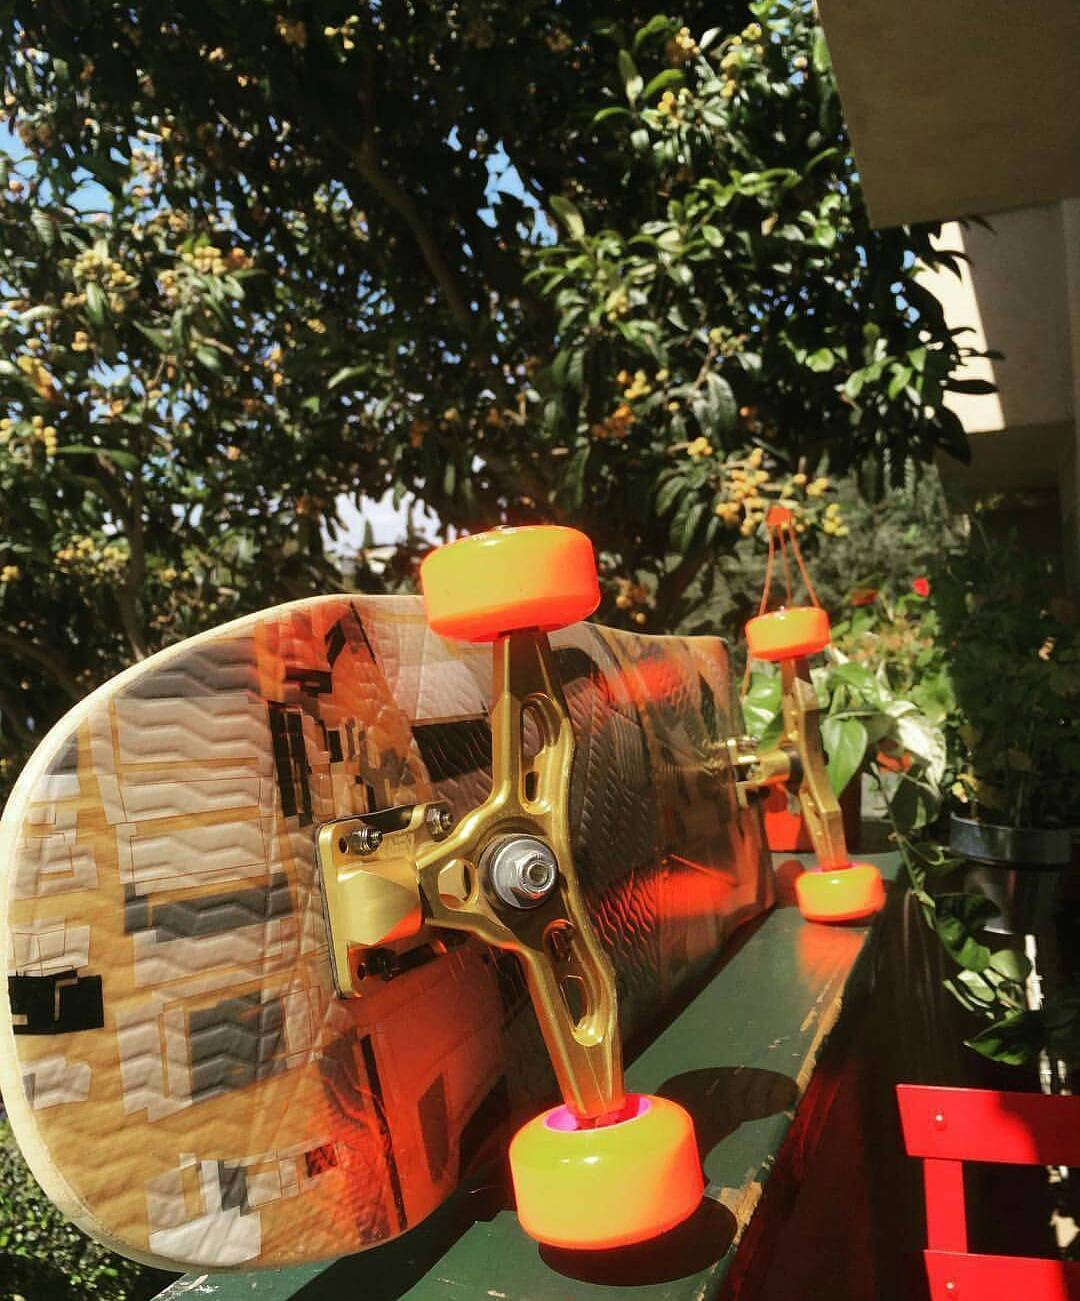 Freshies for the weekend!  Loaded Overland, Orange Orangatang Skiffs, Gold AF Aera Trucks.  #LoadedBoards #Overland #Orangatang #Skiffs